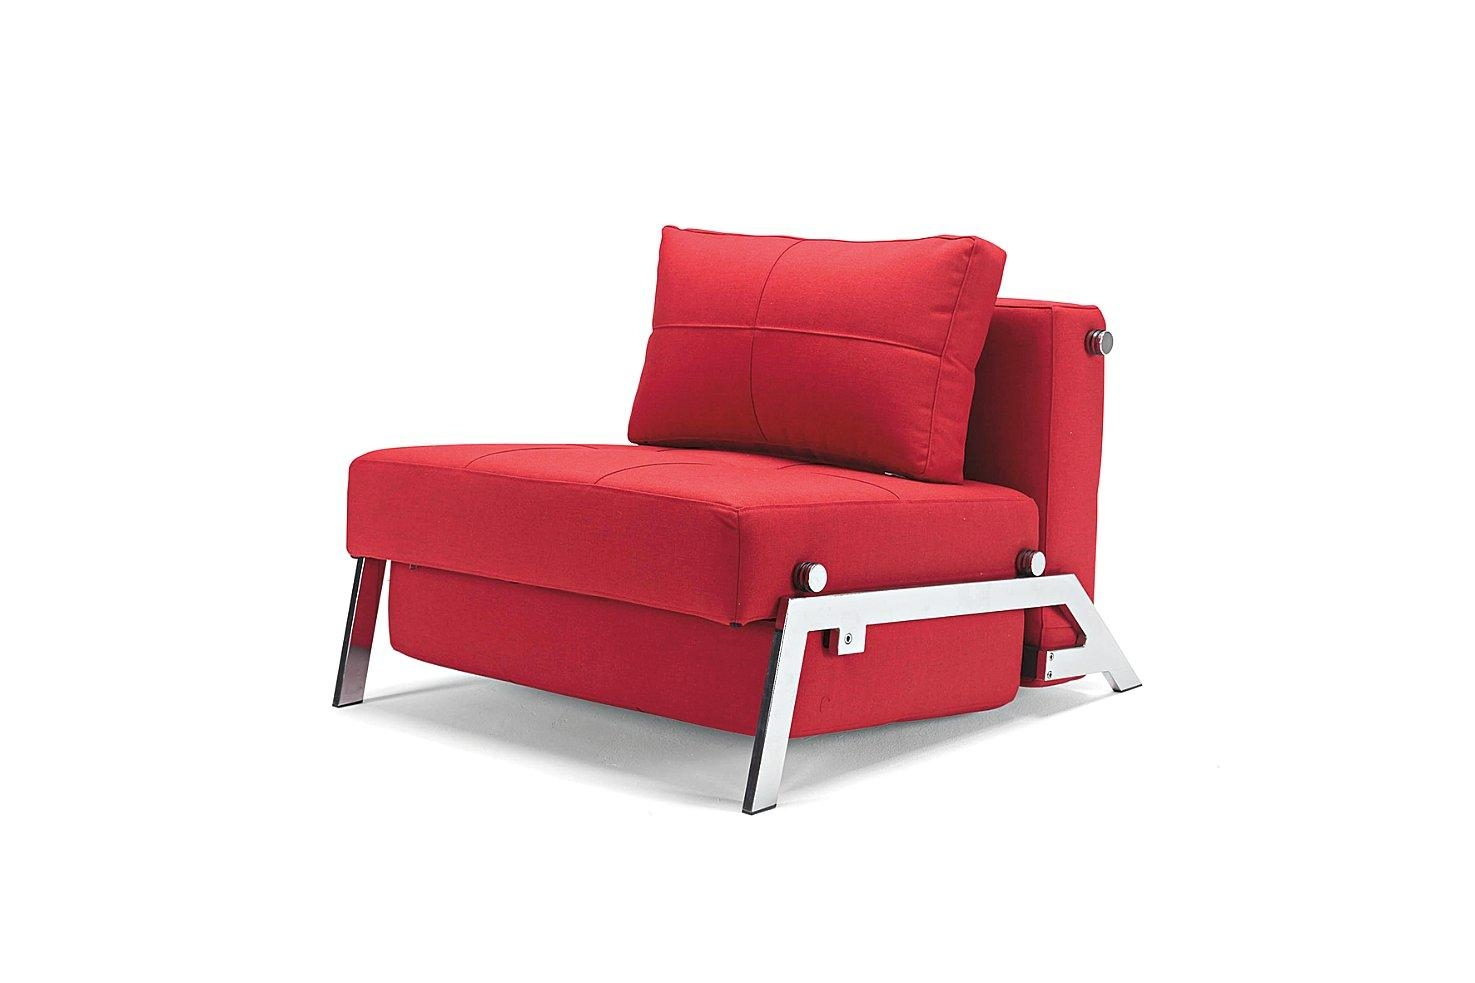 Single Sofa Bed Moblerfurniture Red Color – Lentine Marine | #41995 With Regard To Single Chair Sofa Beds (Image 17 of 22)